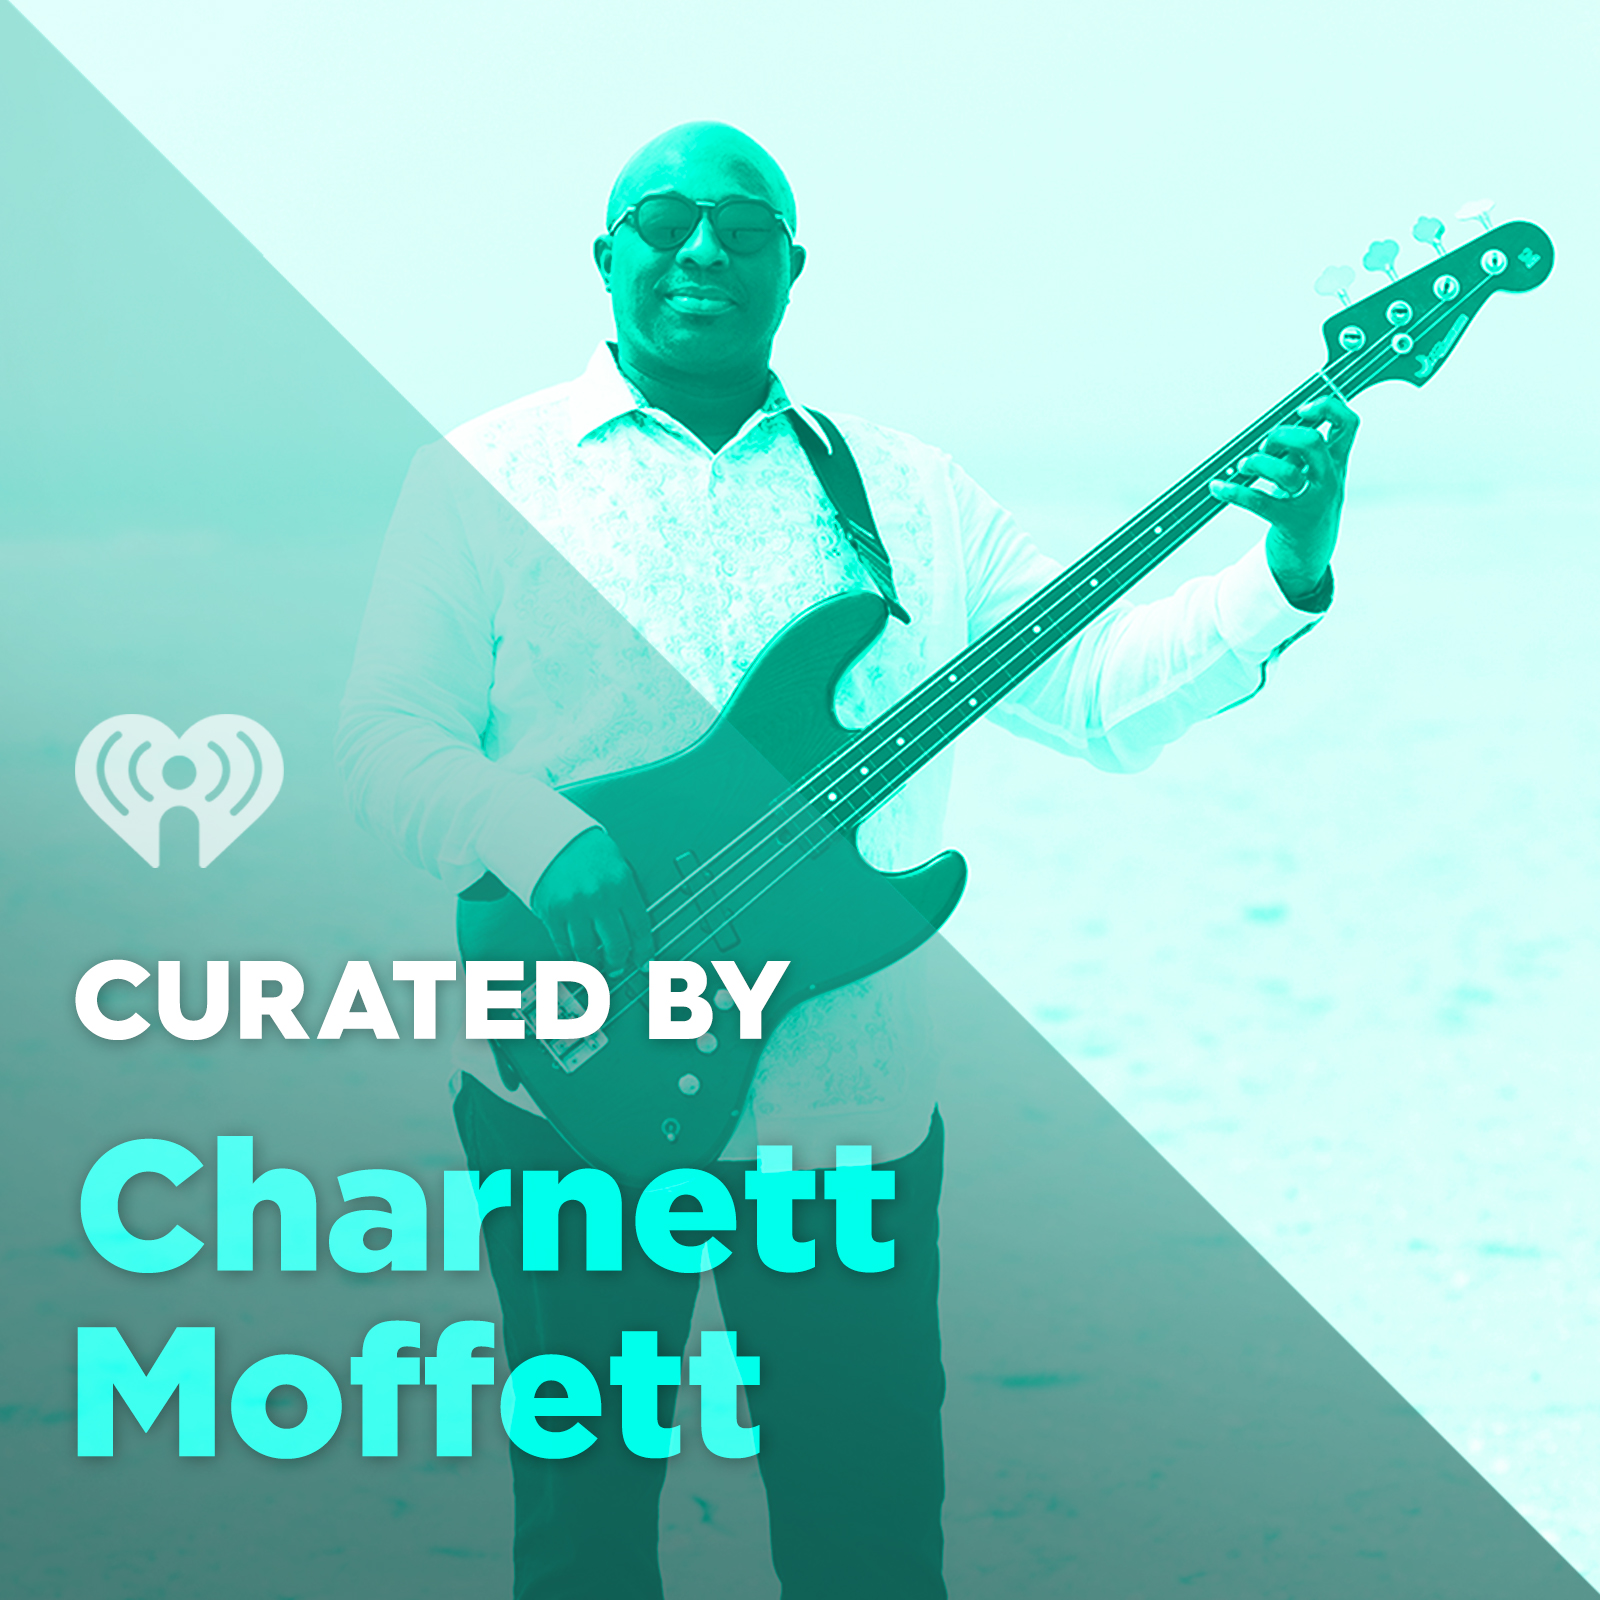 Curated By: Charnett Moffett